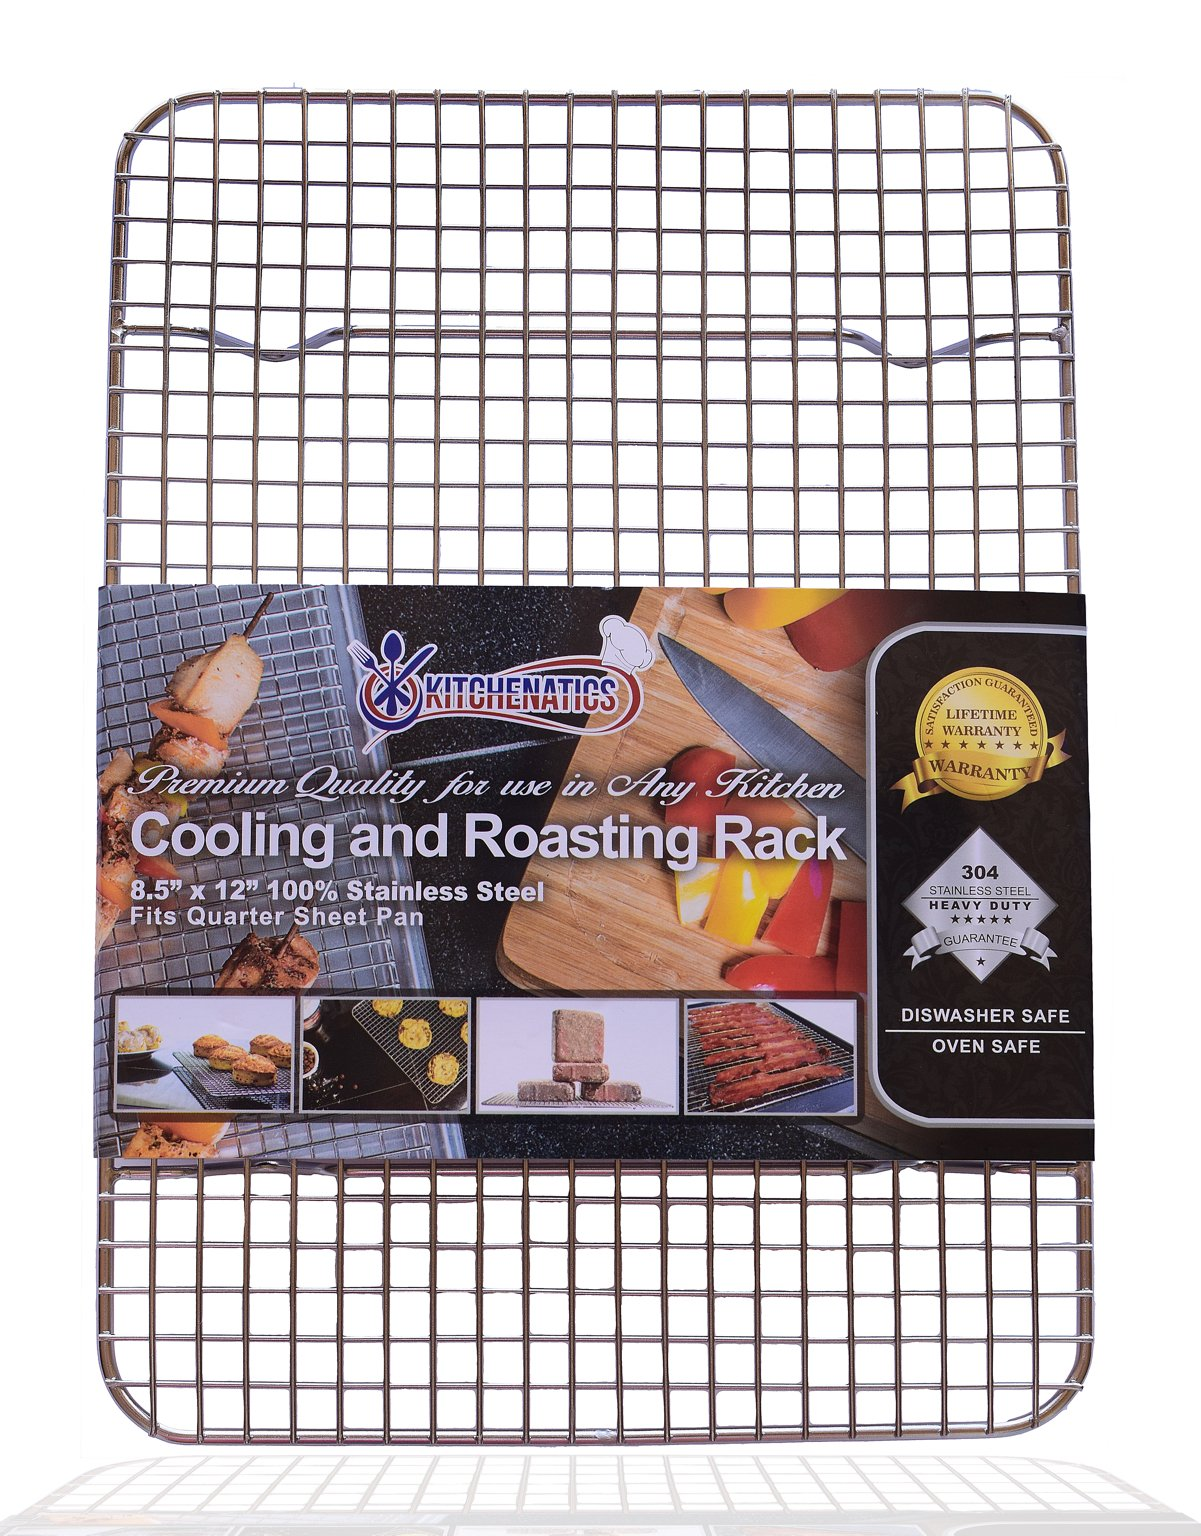 "KITCHENATICS Professional Grade Stainless Steel Cooling and Roasting Wire Rack Fits Half Sheet Baking Pan for Cookies, Cakes Oven-Safe for Cooking, Smoking, Grilling, Drying - Heavy Duty Rust-Proof 1 COMMERCIAL GRADE 304 (18/8) STAINLESS STEEL cooling rack, RUST RESISTANT, NONTOXIC and DISHWASHER_SAFE for long-lasting durability. SUPREME DURABILITY with 1-INCH (1"") IN HEIGHT for optimal airflow, allows air to circulate around all sides of the pan for absolutely perfect cooking and cooling. OVEN-SAFE to 575˚F for effective roasting, and best for grilling, baking, broiling, smoking, bbq and drying. There is no need to flip your food while cooking. You will get a crisp and juicy chicken, bacon, turkey, pulled pork, bbq ribs and other meat and vegetable dishes without any sweating."